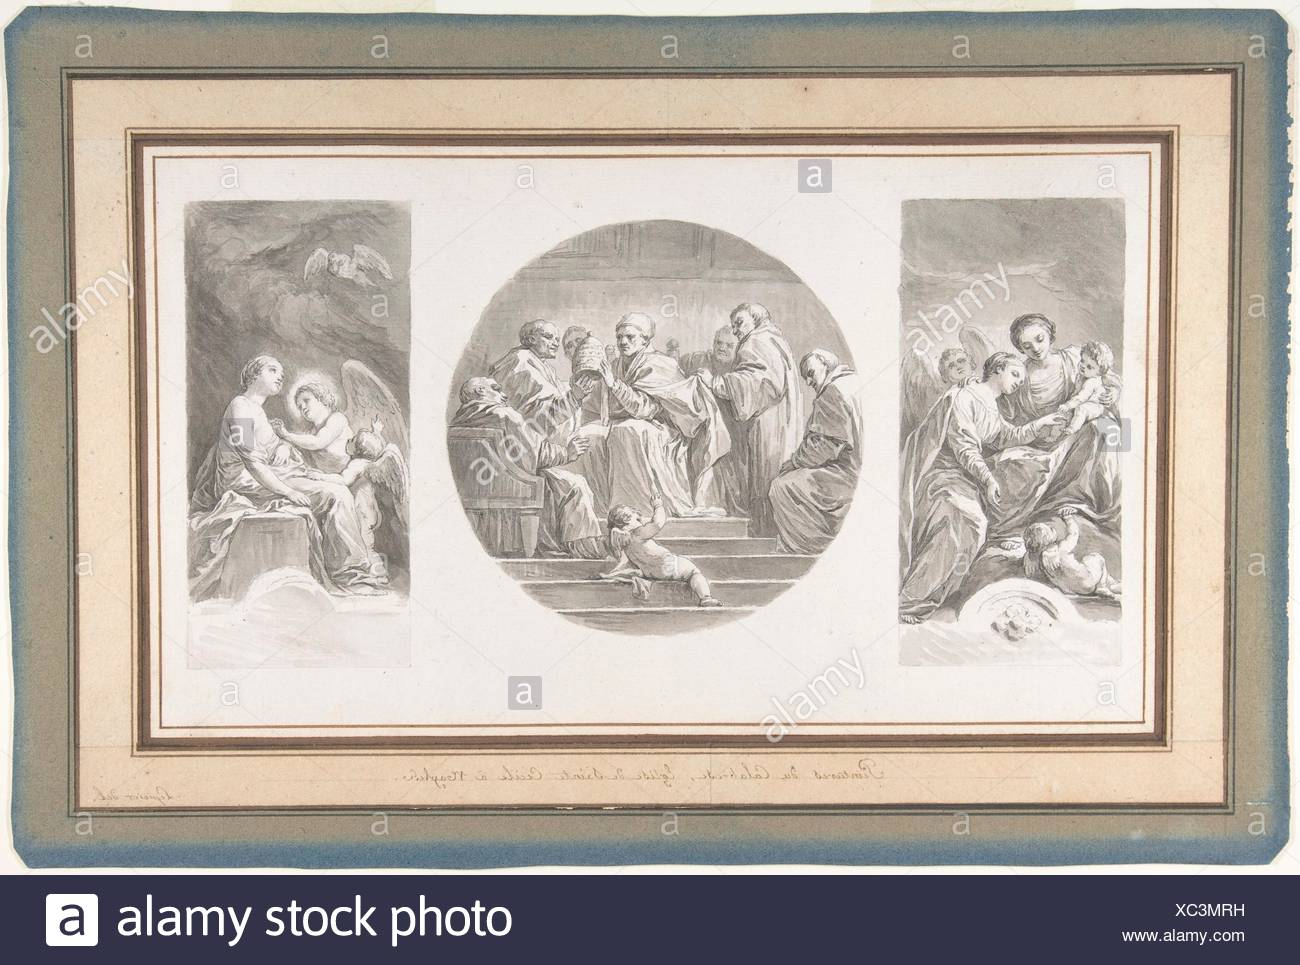 The Mystic Marriage of Saint Catherine; Saint Celestine V Renouncing the Papacy; Saint Catherine Touched by Divine Love. Artist: Nicolas Bernard - Stock Image